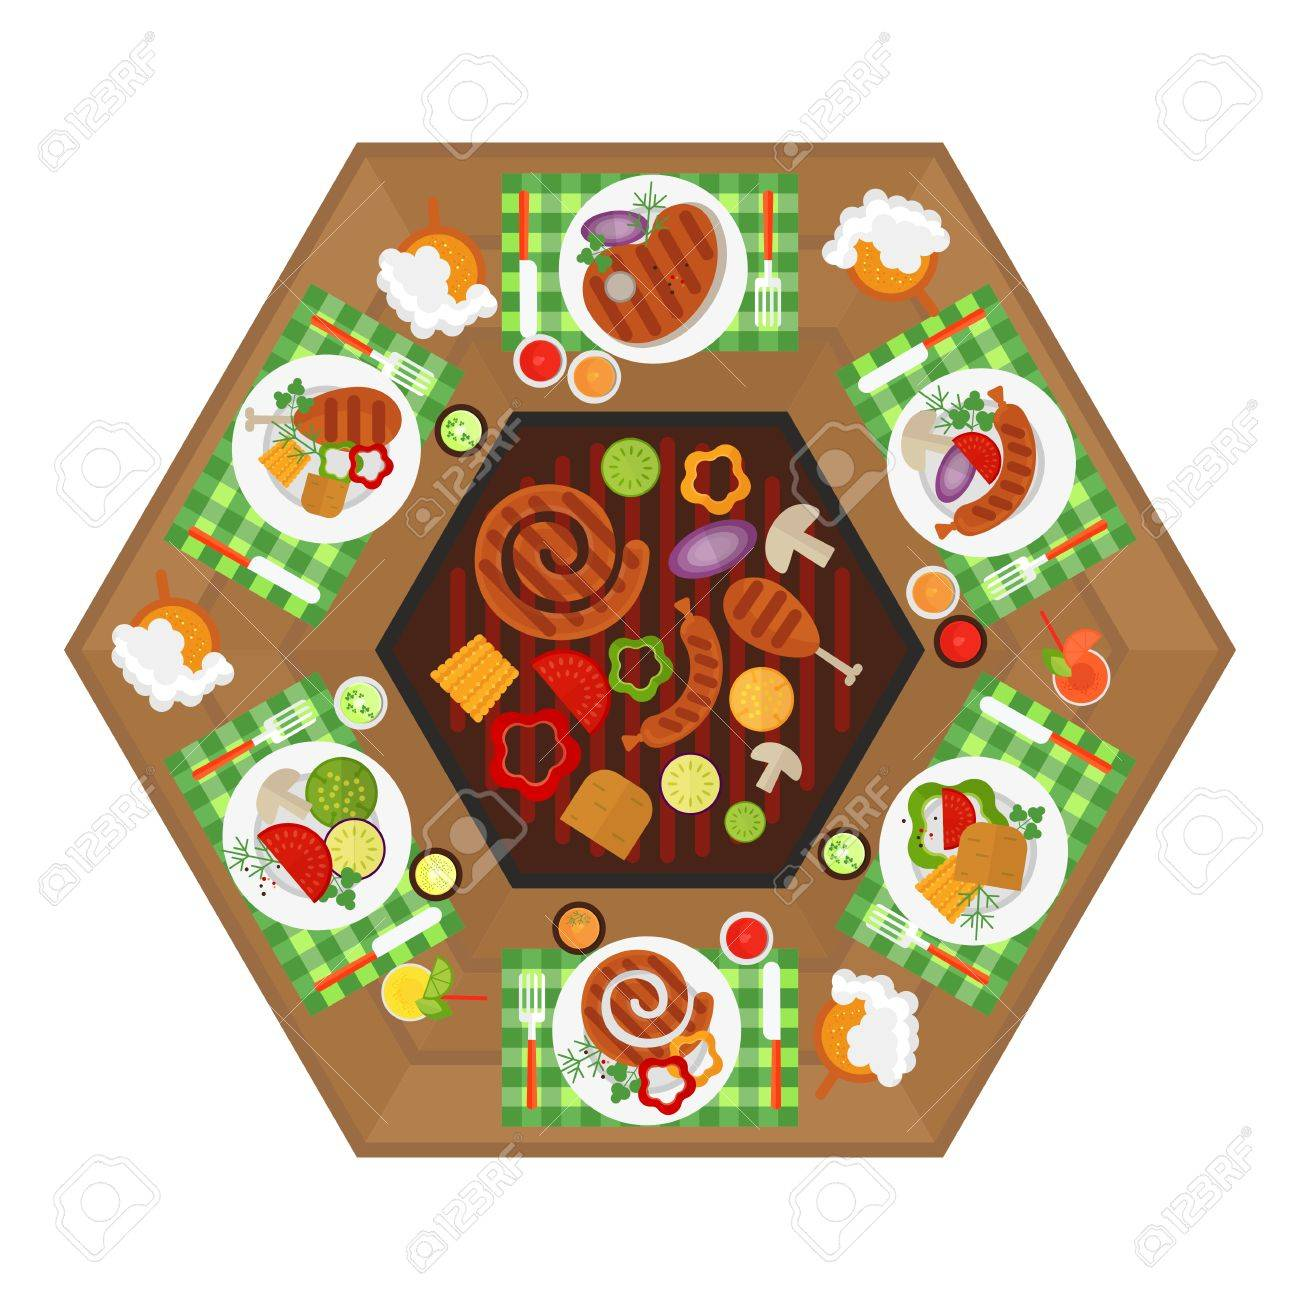 BBQ Grill Table For Party. Top View. Image For Barbecue Party Card, Poster